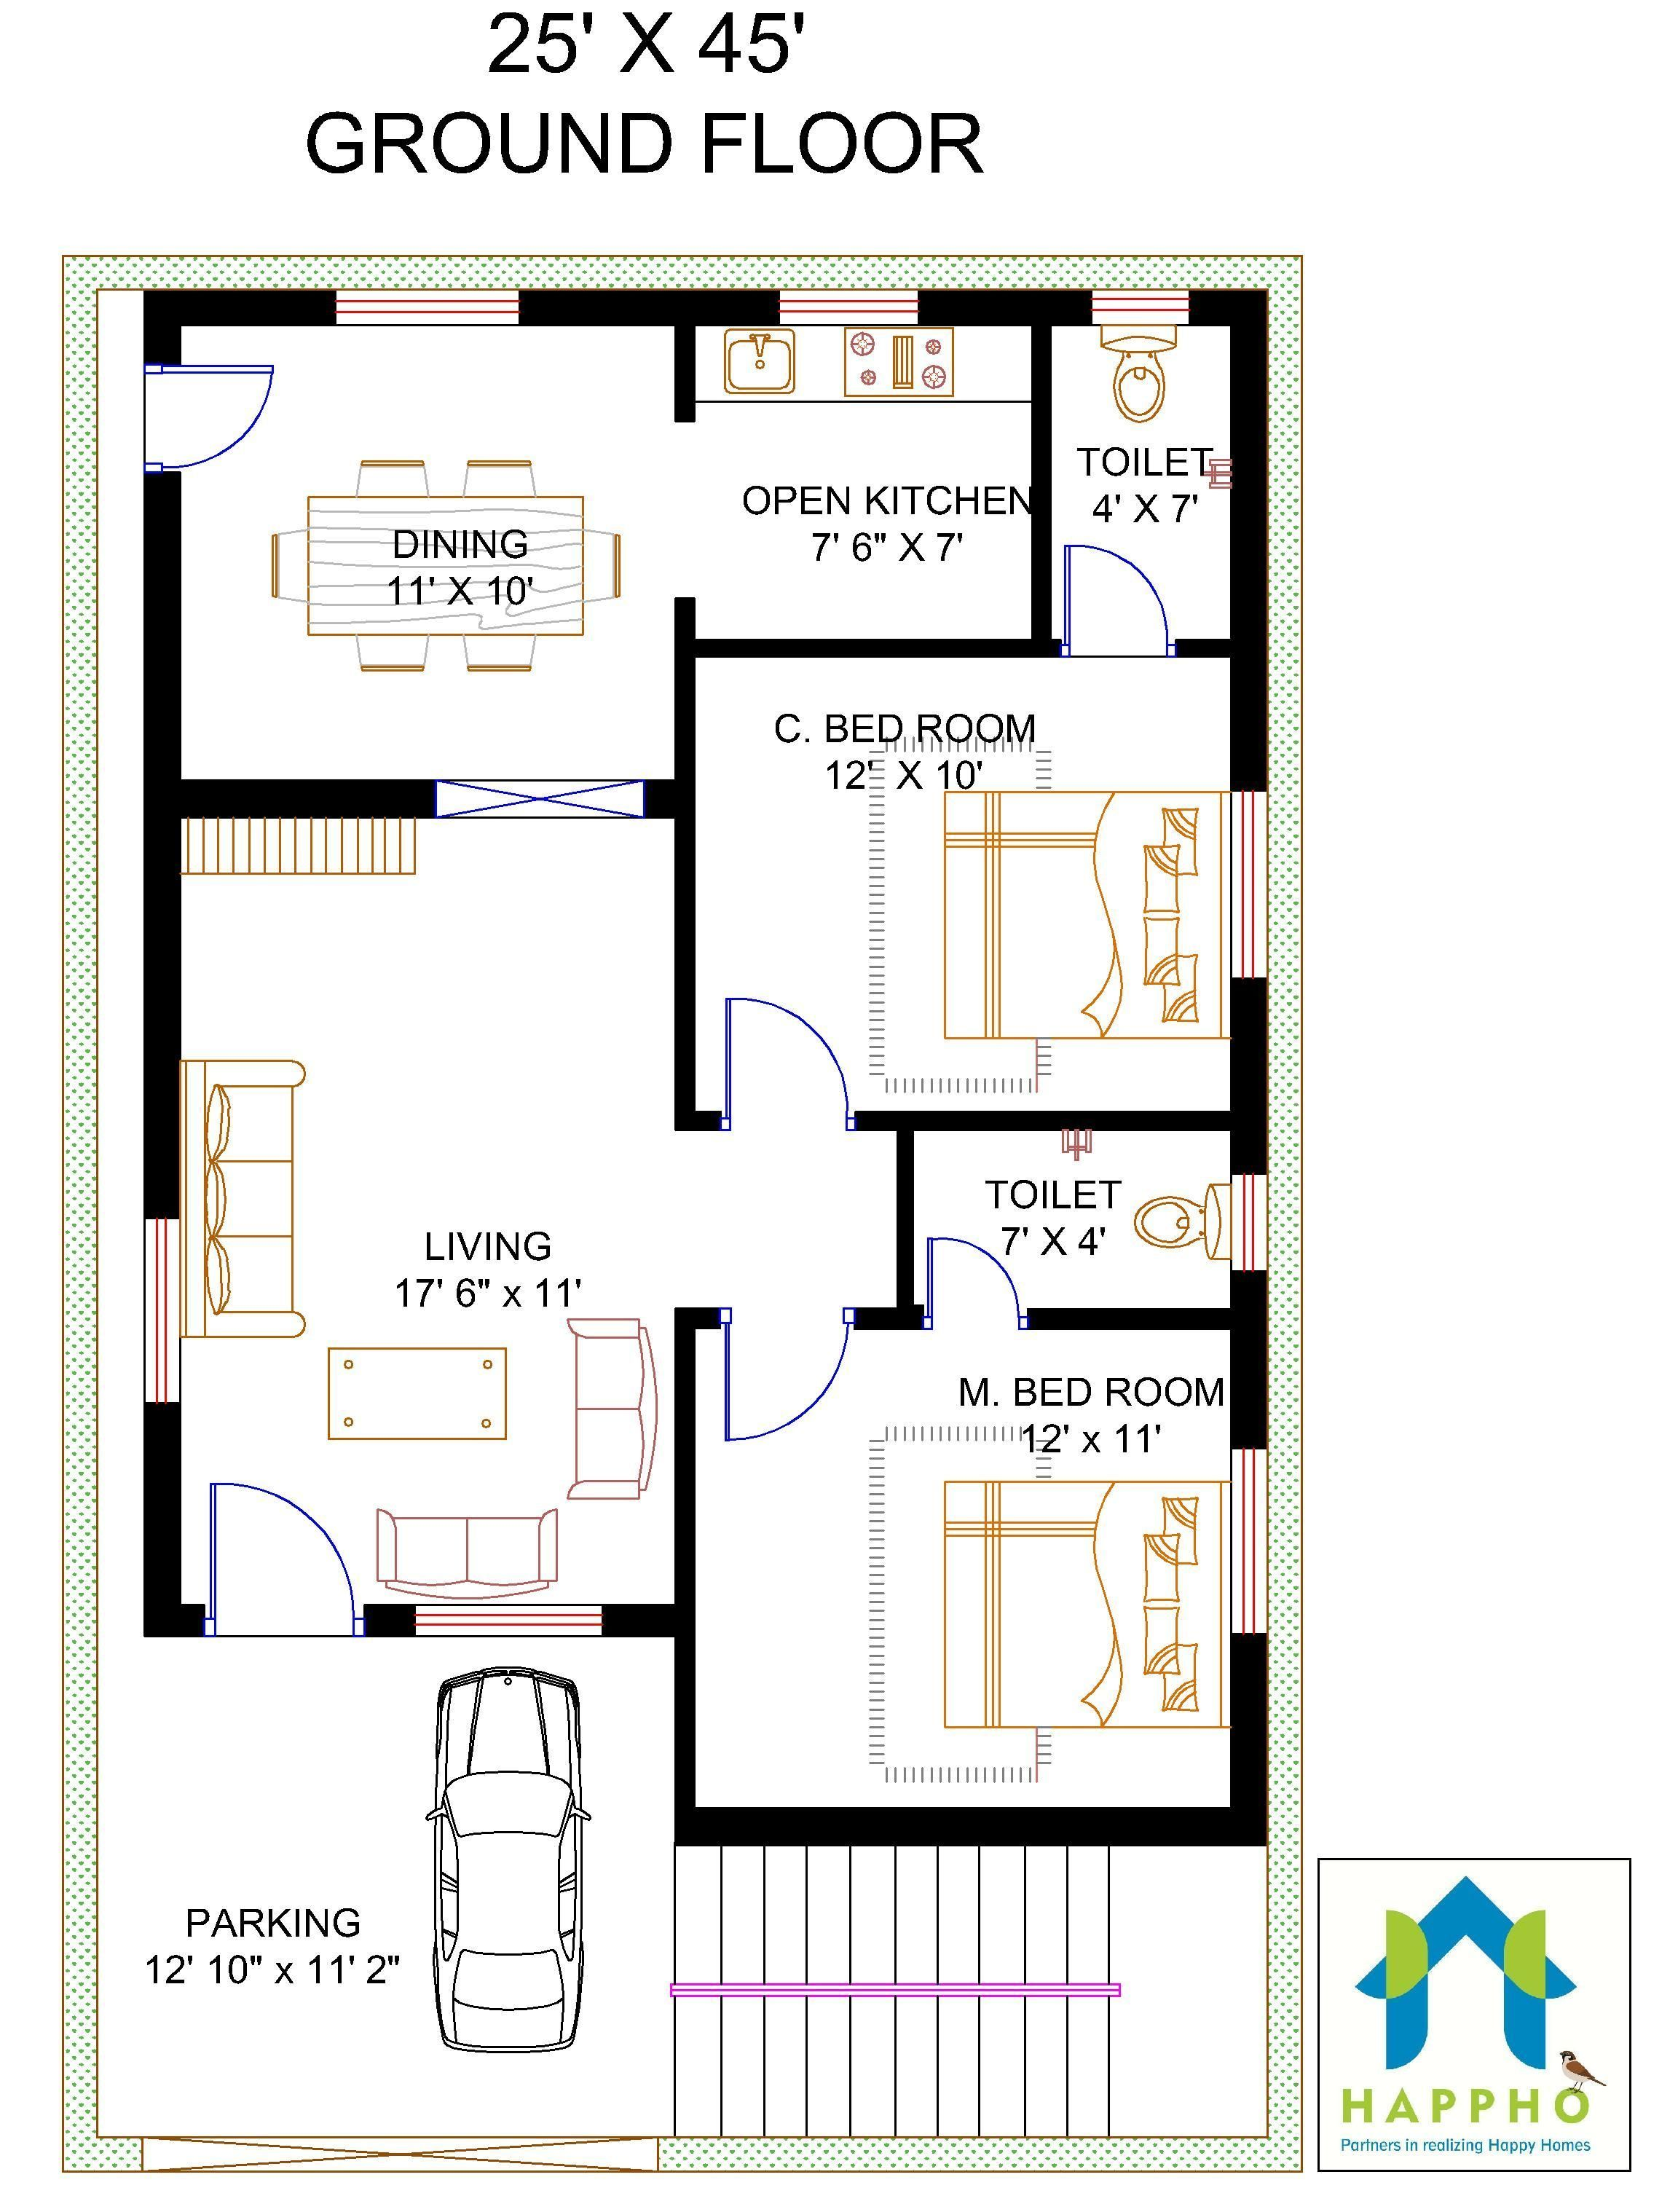 30 Floor Designs That Lay A World Of Possibilities At Your: 2 BHK Floor Plans Of 25*45 - Google Search